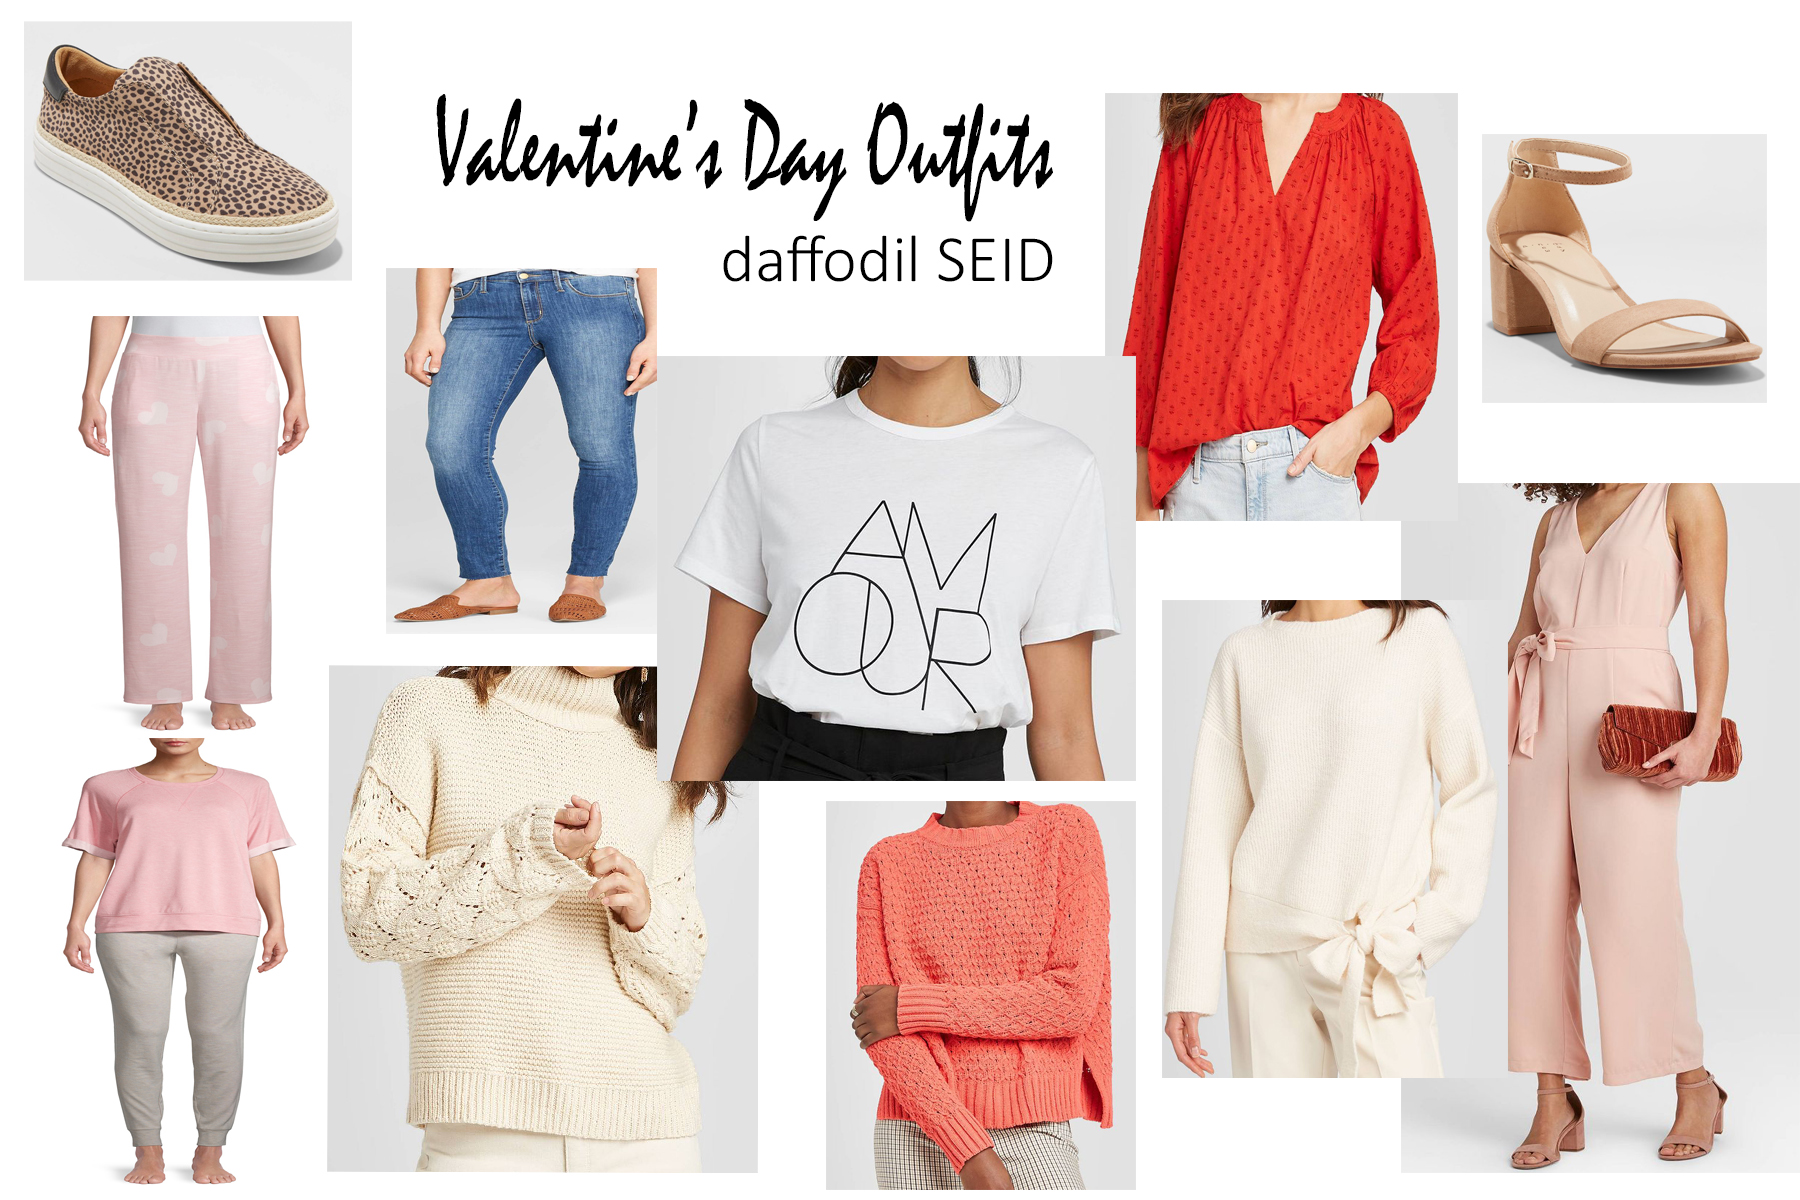 daffodilseid - Valentine's Day Outfit collage